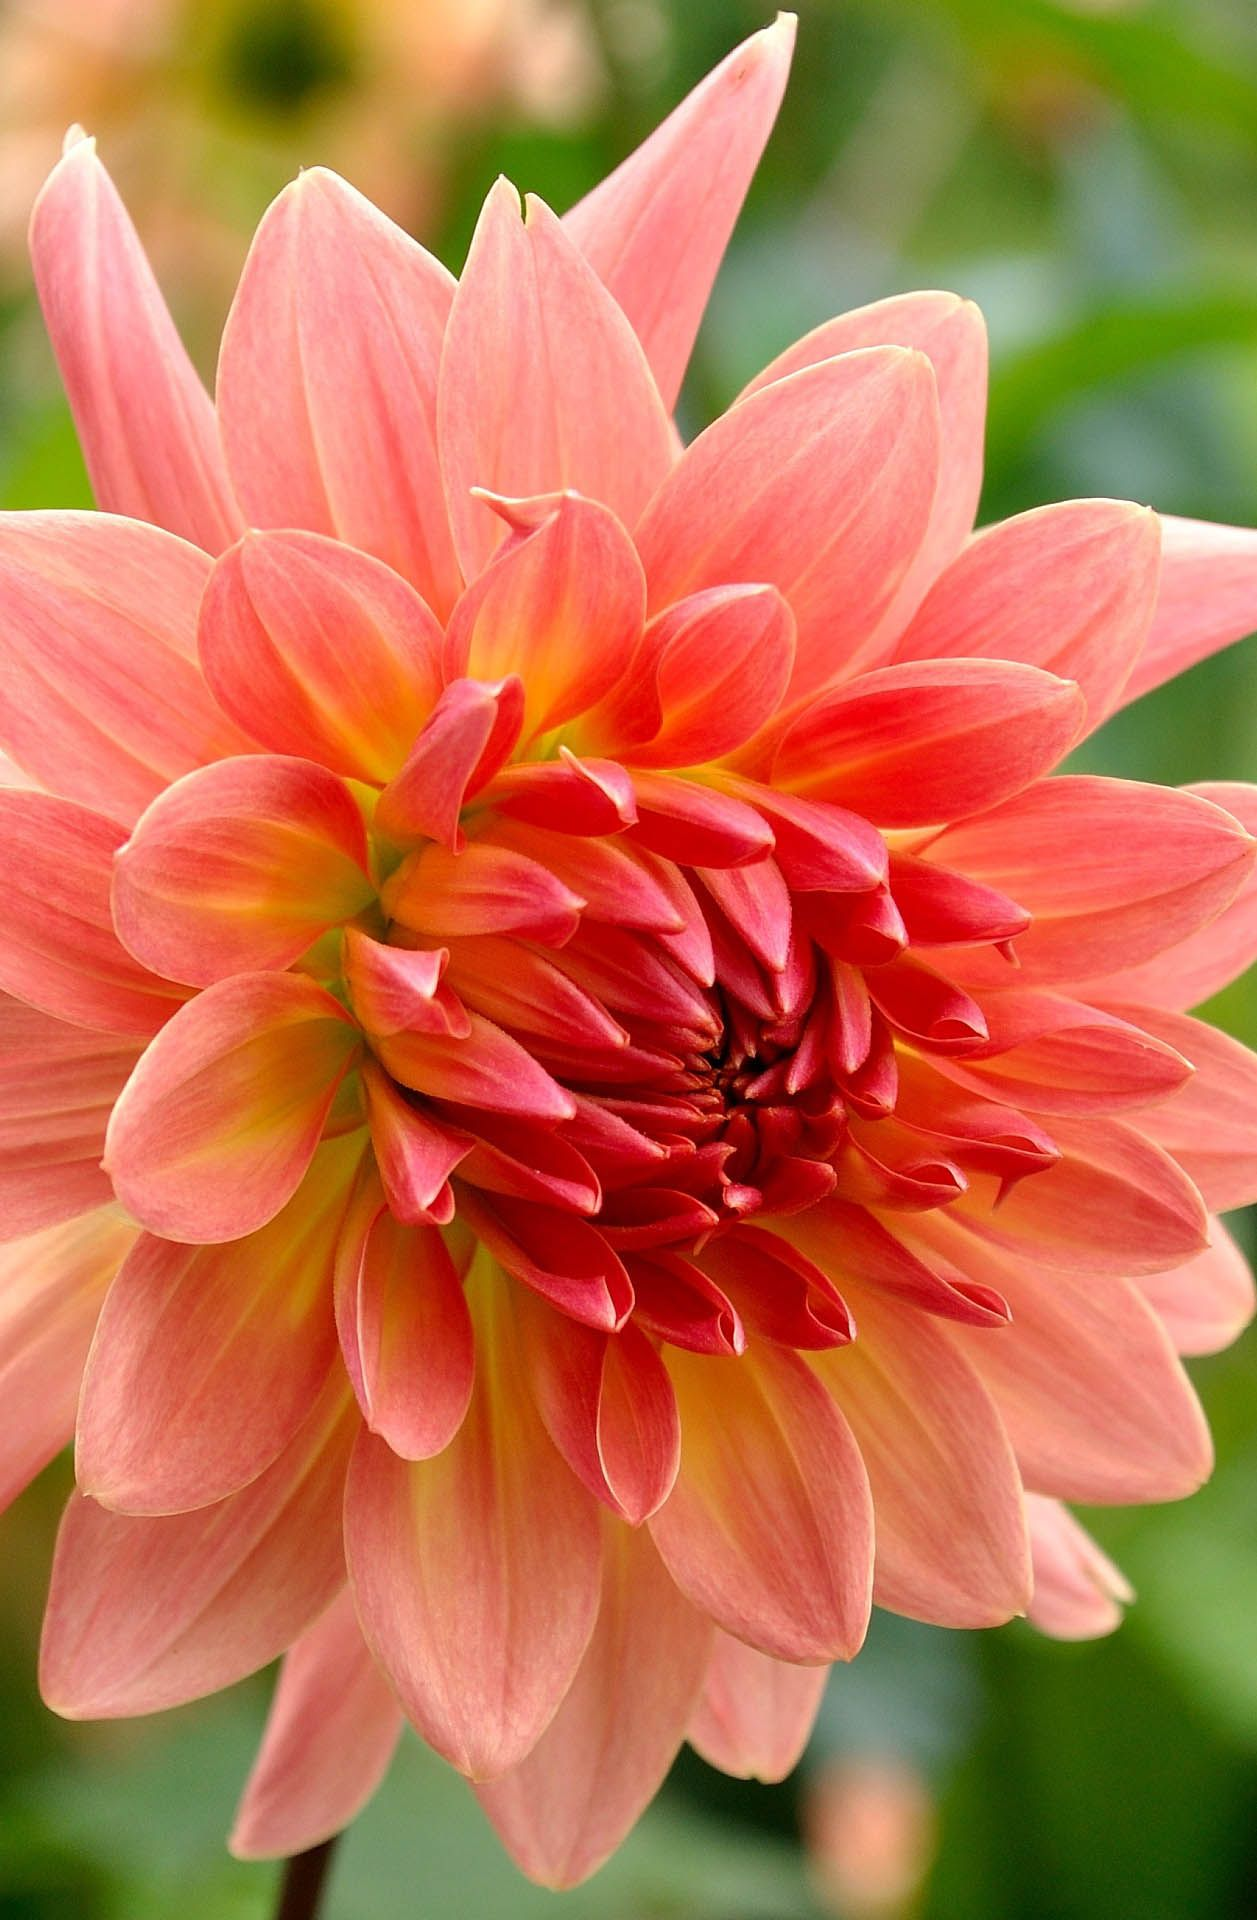 The 35 best flower photos flowers pinterest flowers flower dahlia flower photo 35 best flower photos izmirmasajfo